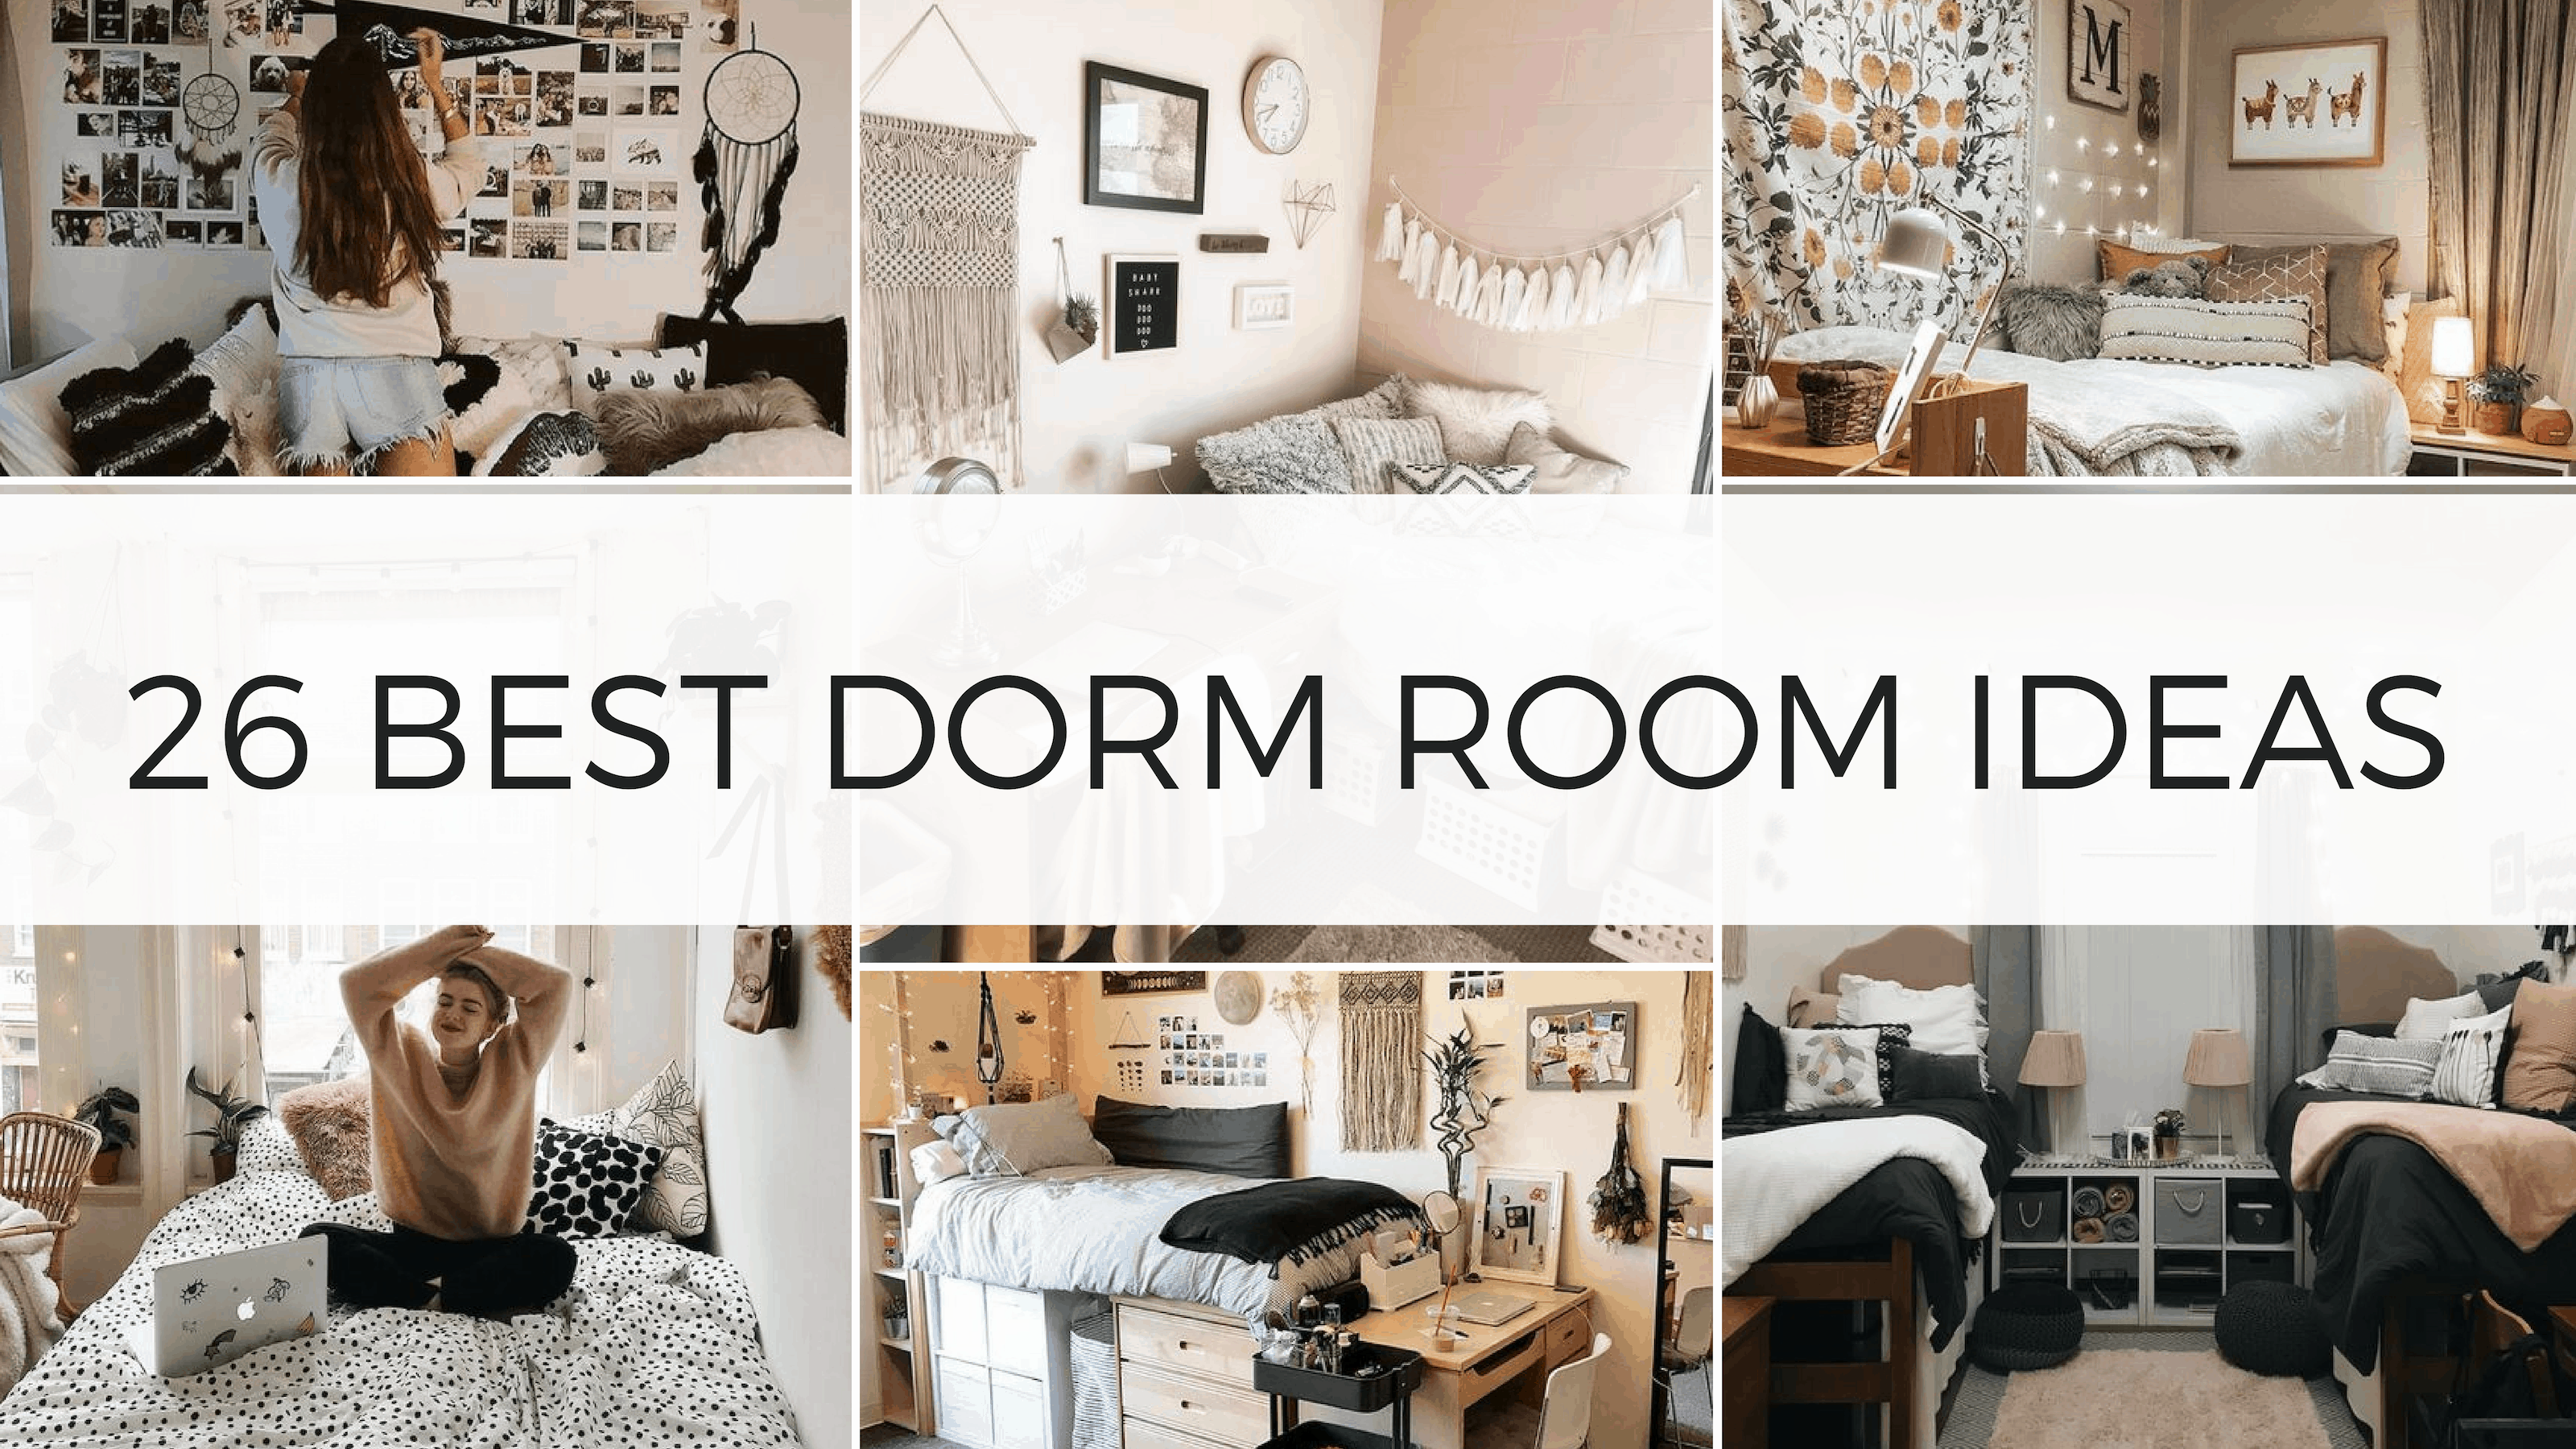 26 Best Dorm Room Ideas That Will Transform Your Room - By ...